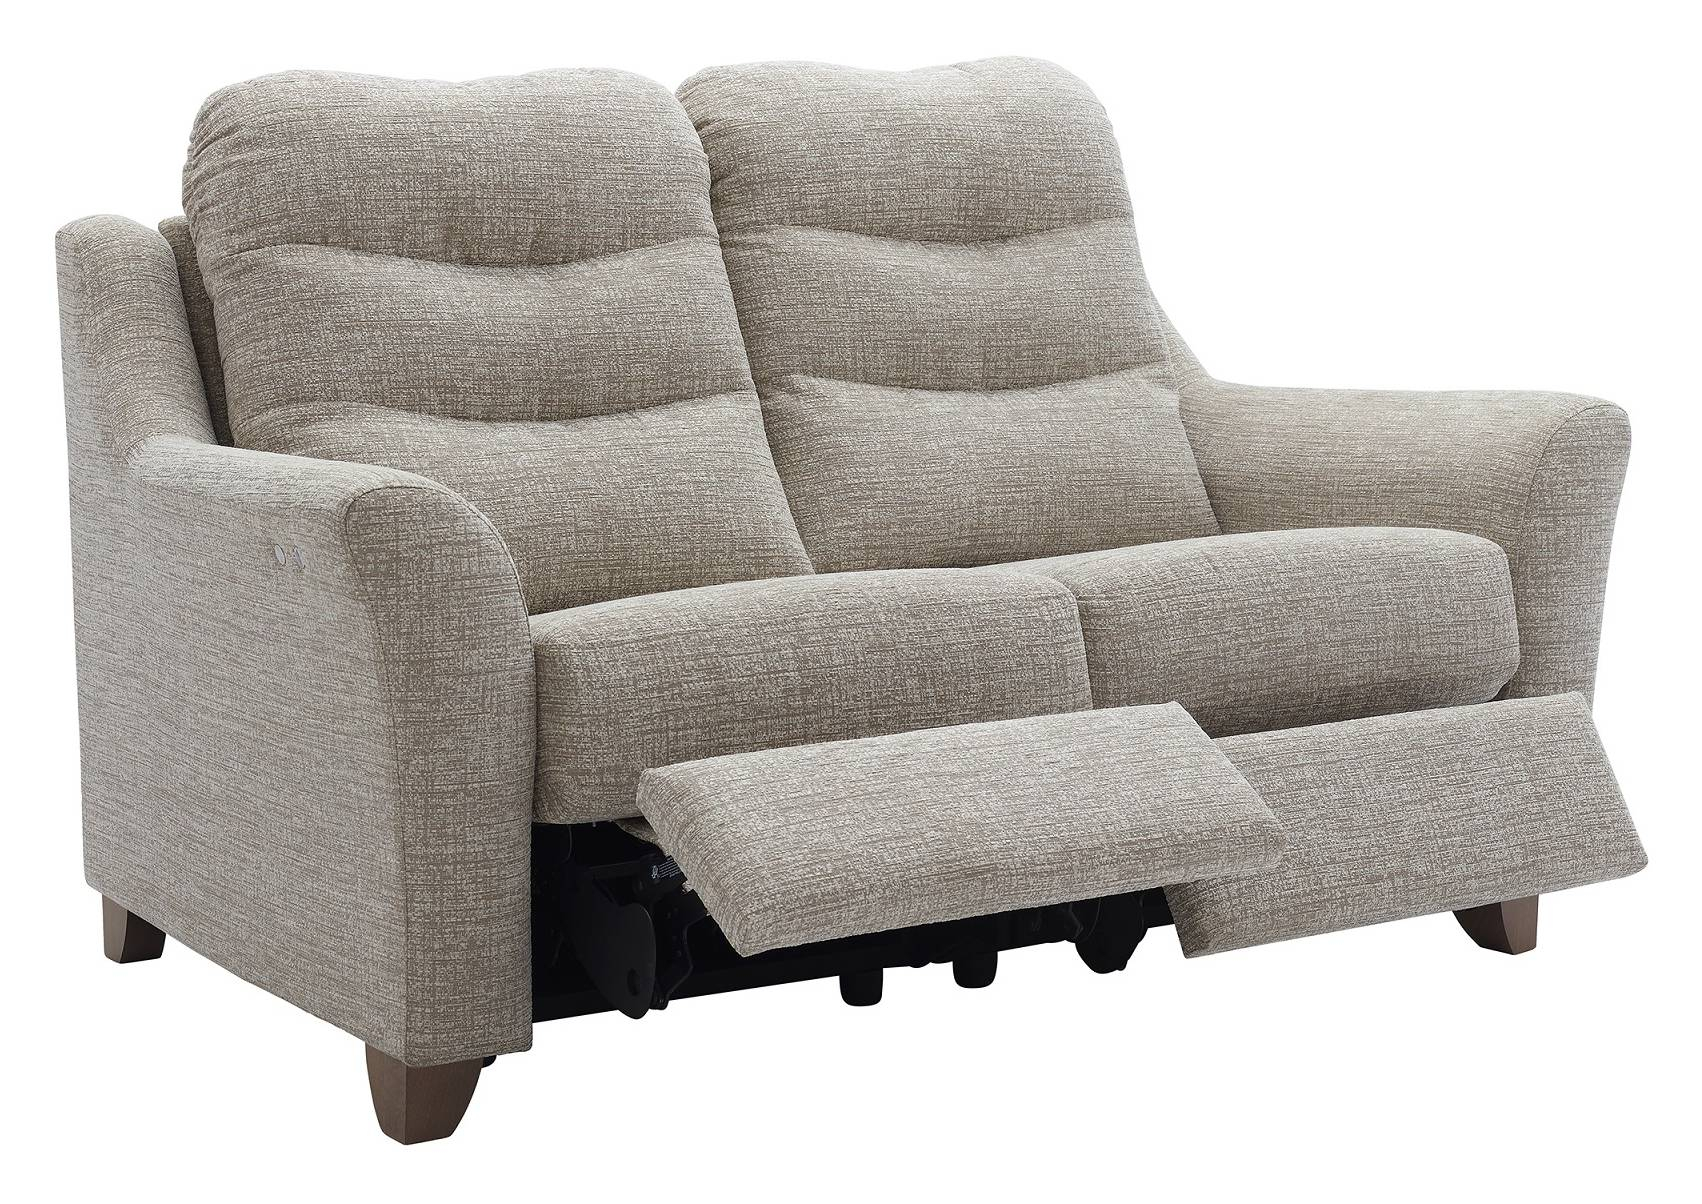 G Plan Tate Fixed & Recliner Sofa |Oldrids & Downtown Throughout Tate Arm Sofa Chairs (Image 6 of 20)